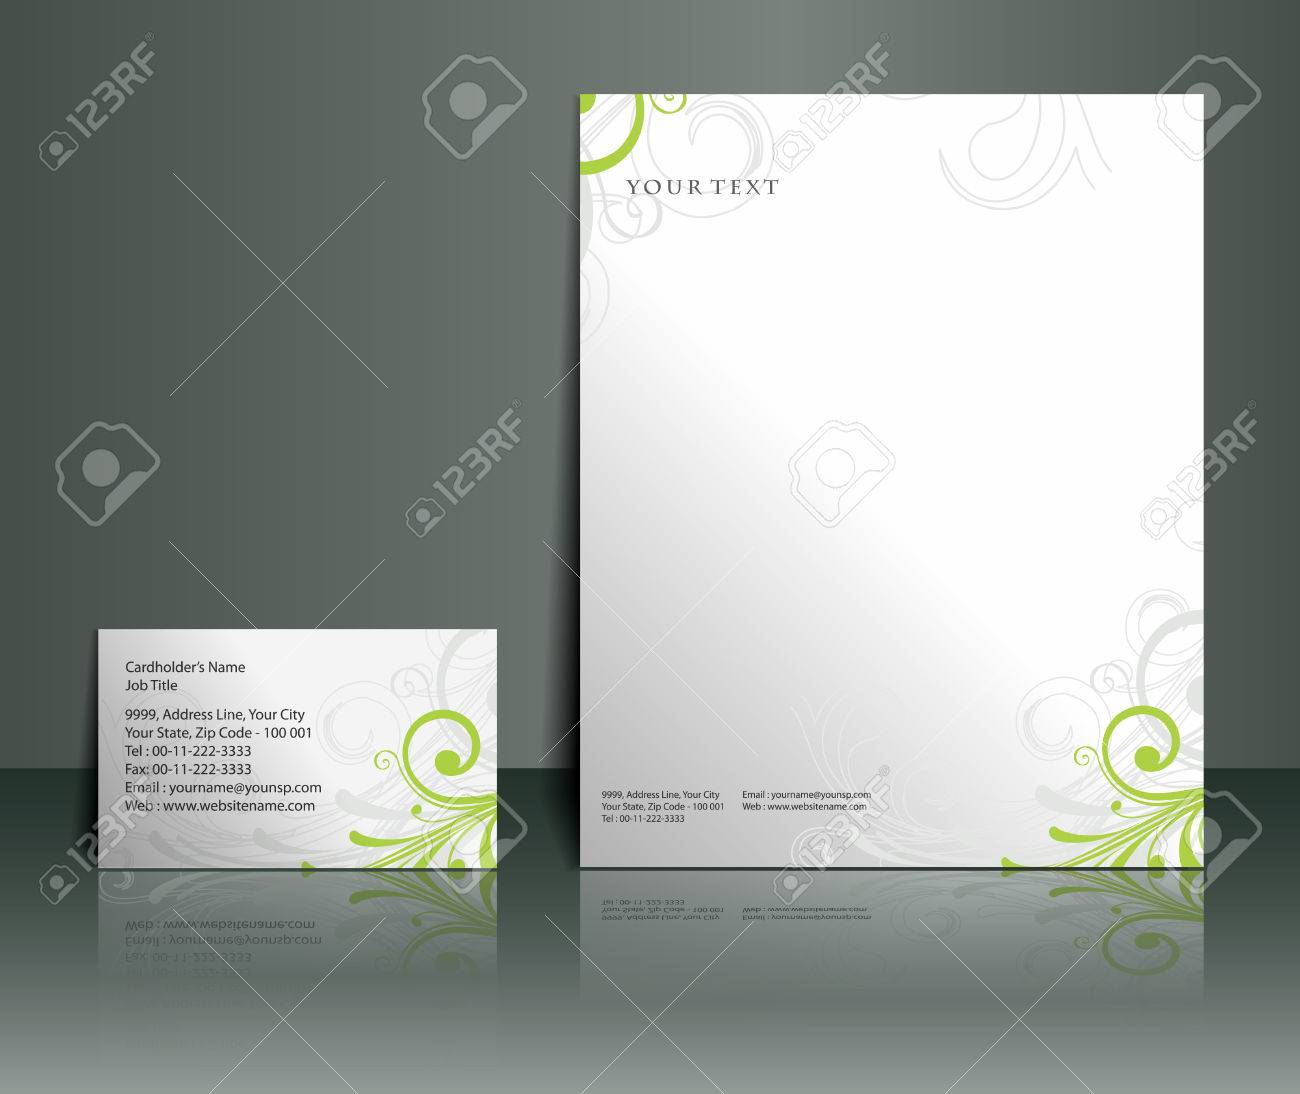 Business style templates for your project design, Vector illustration. Stock Vector - 8958334